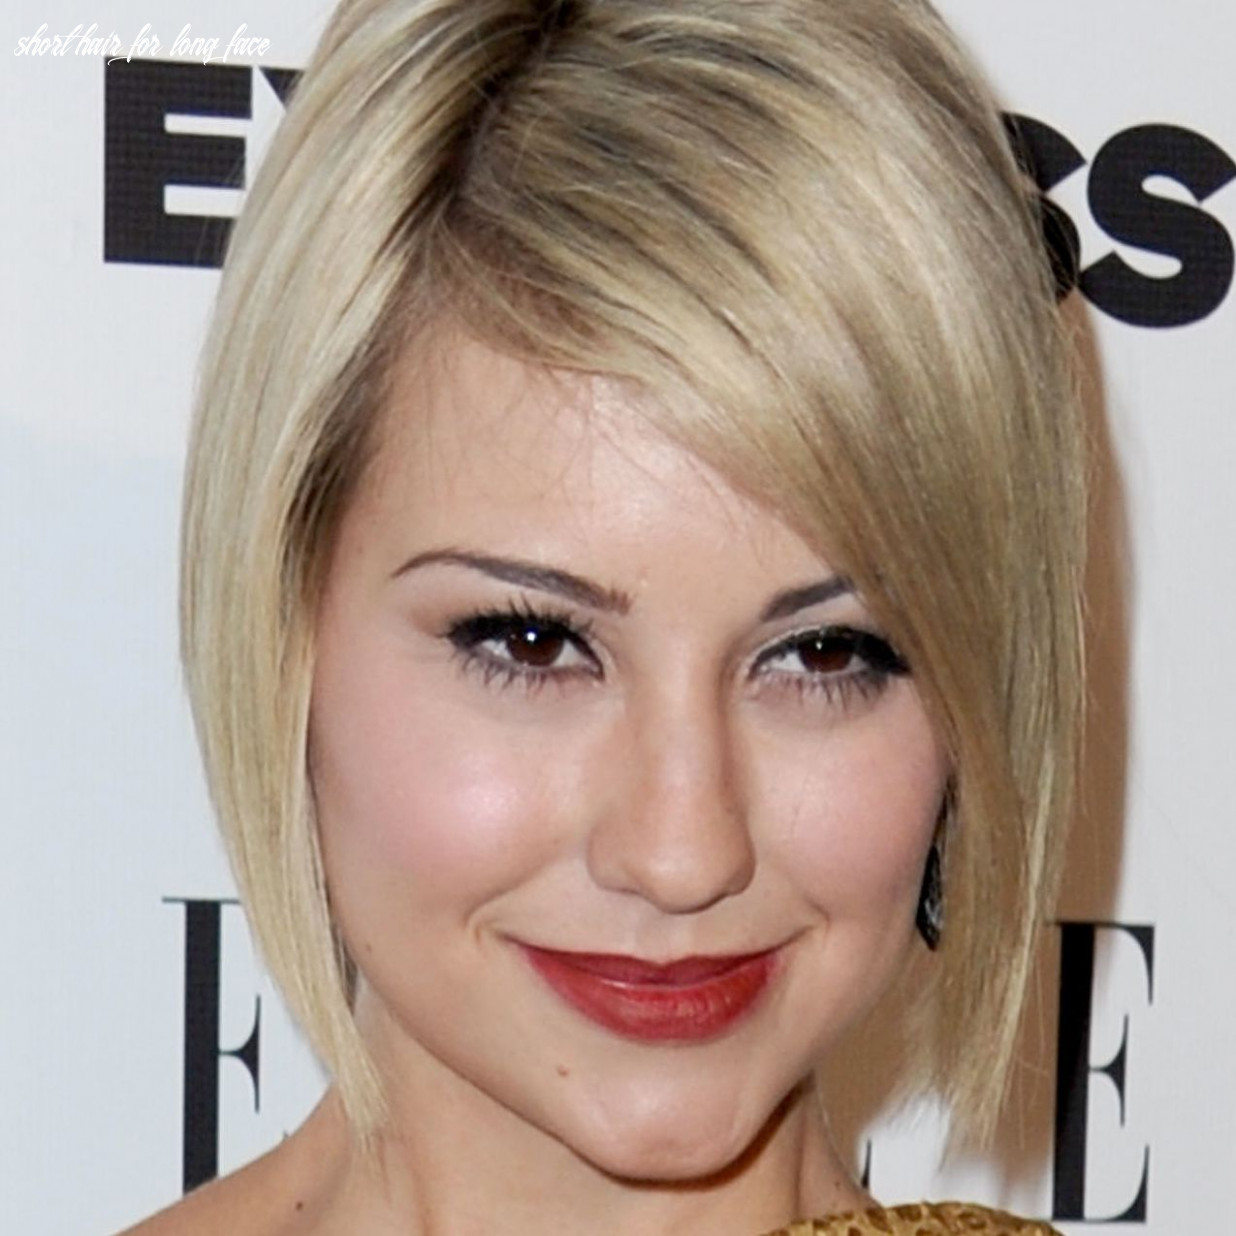 10 amazing hairstyles for the oblong face shape short hair for long face